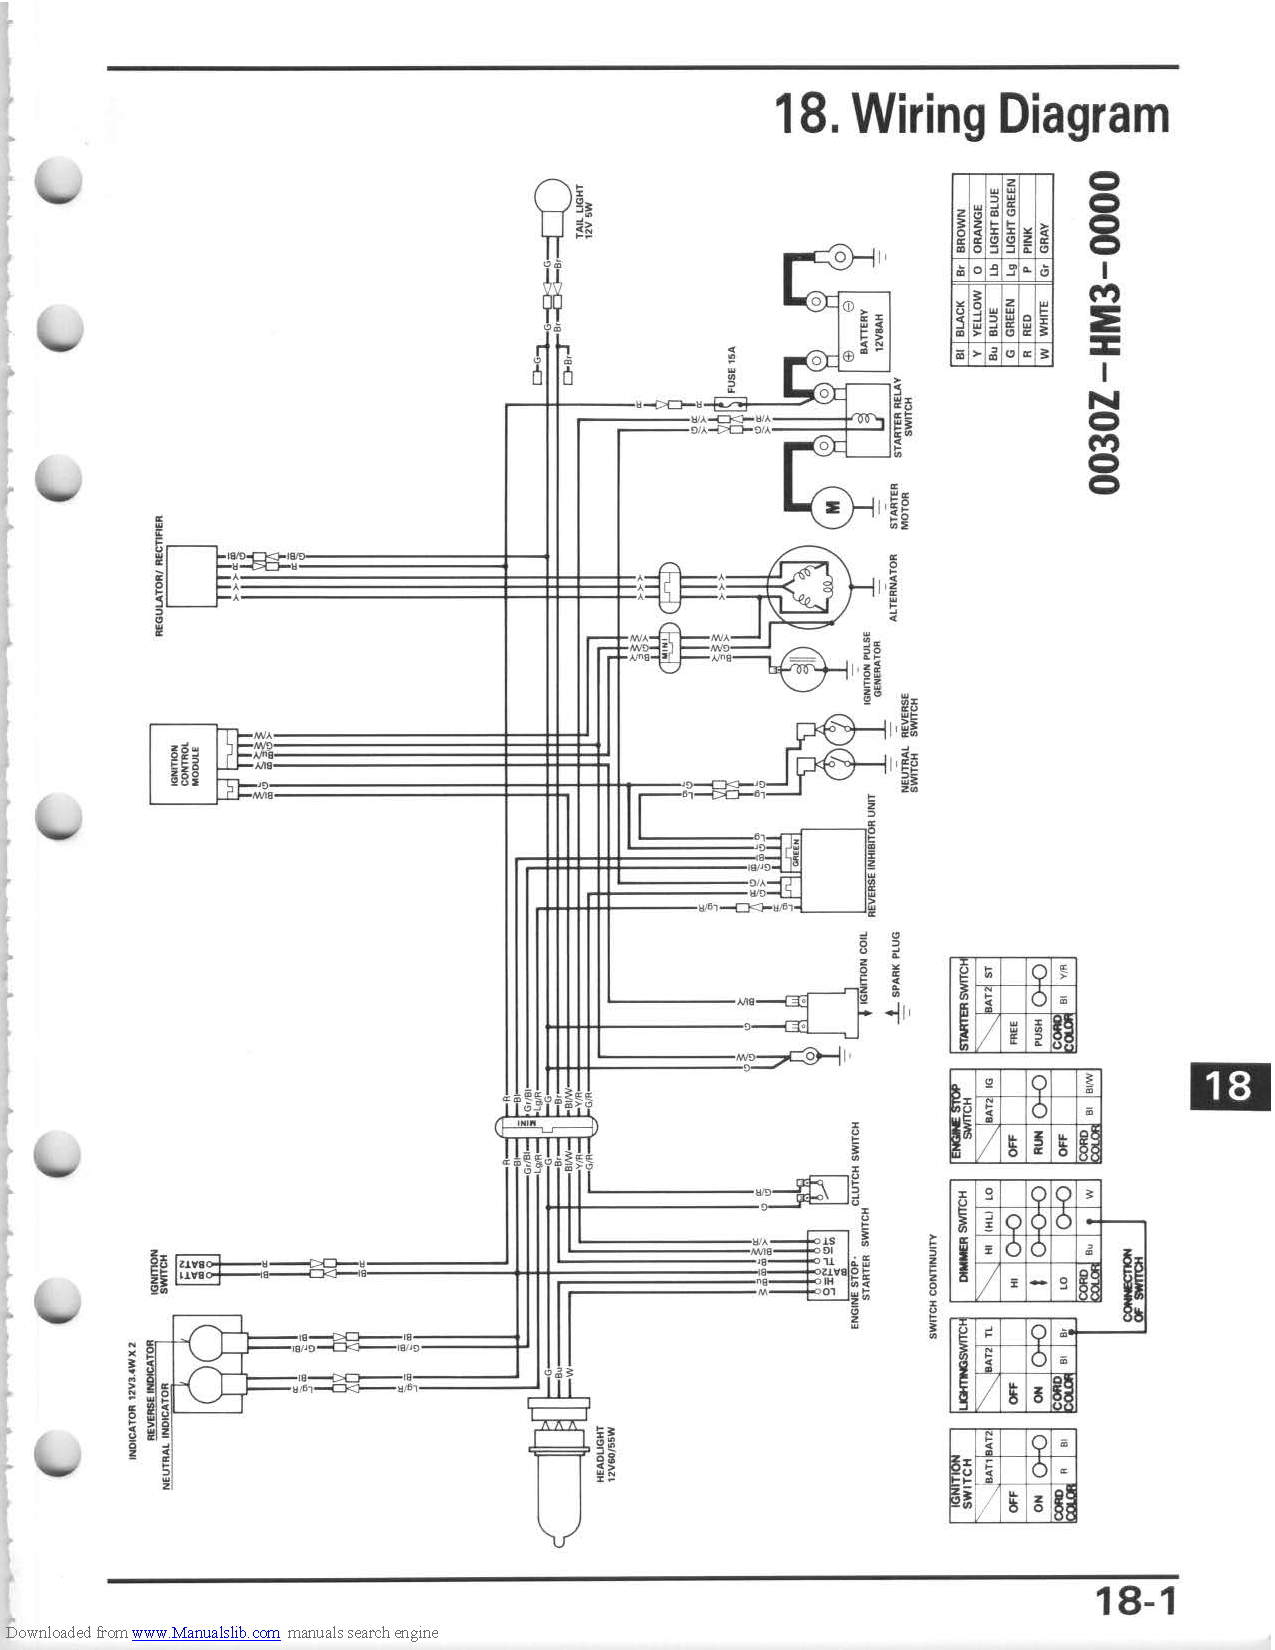 volvo l20f wiring diagrams - wiring diagram eps honda jazz -  pump.yenpancane.jeanjaures37.fr  wiring diagram resource